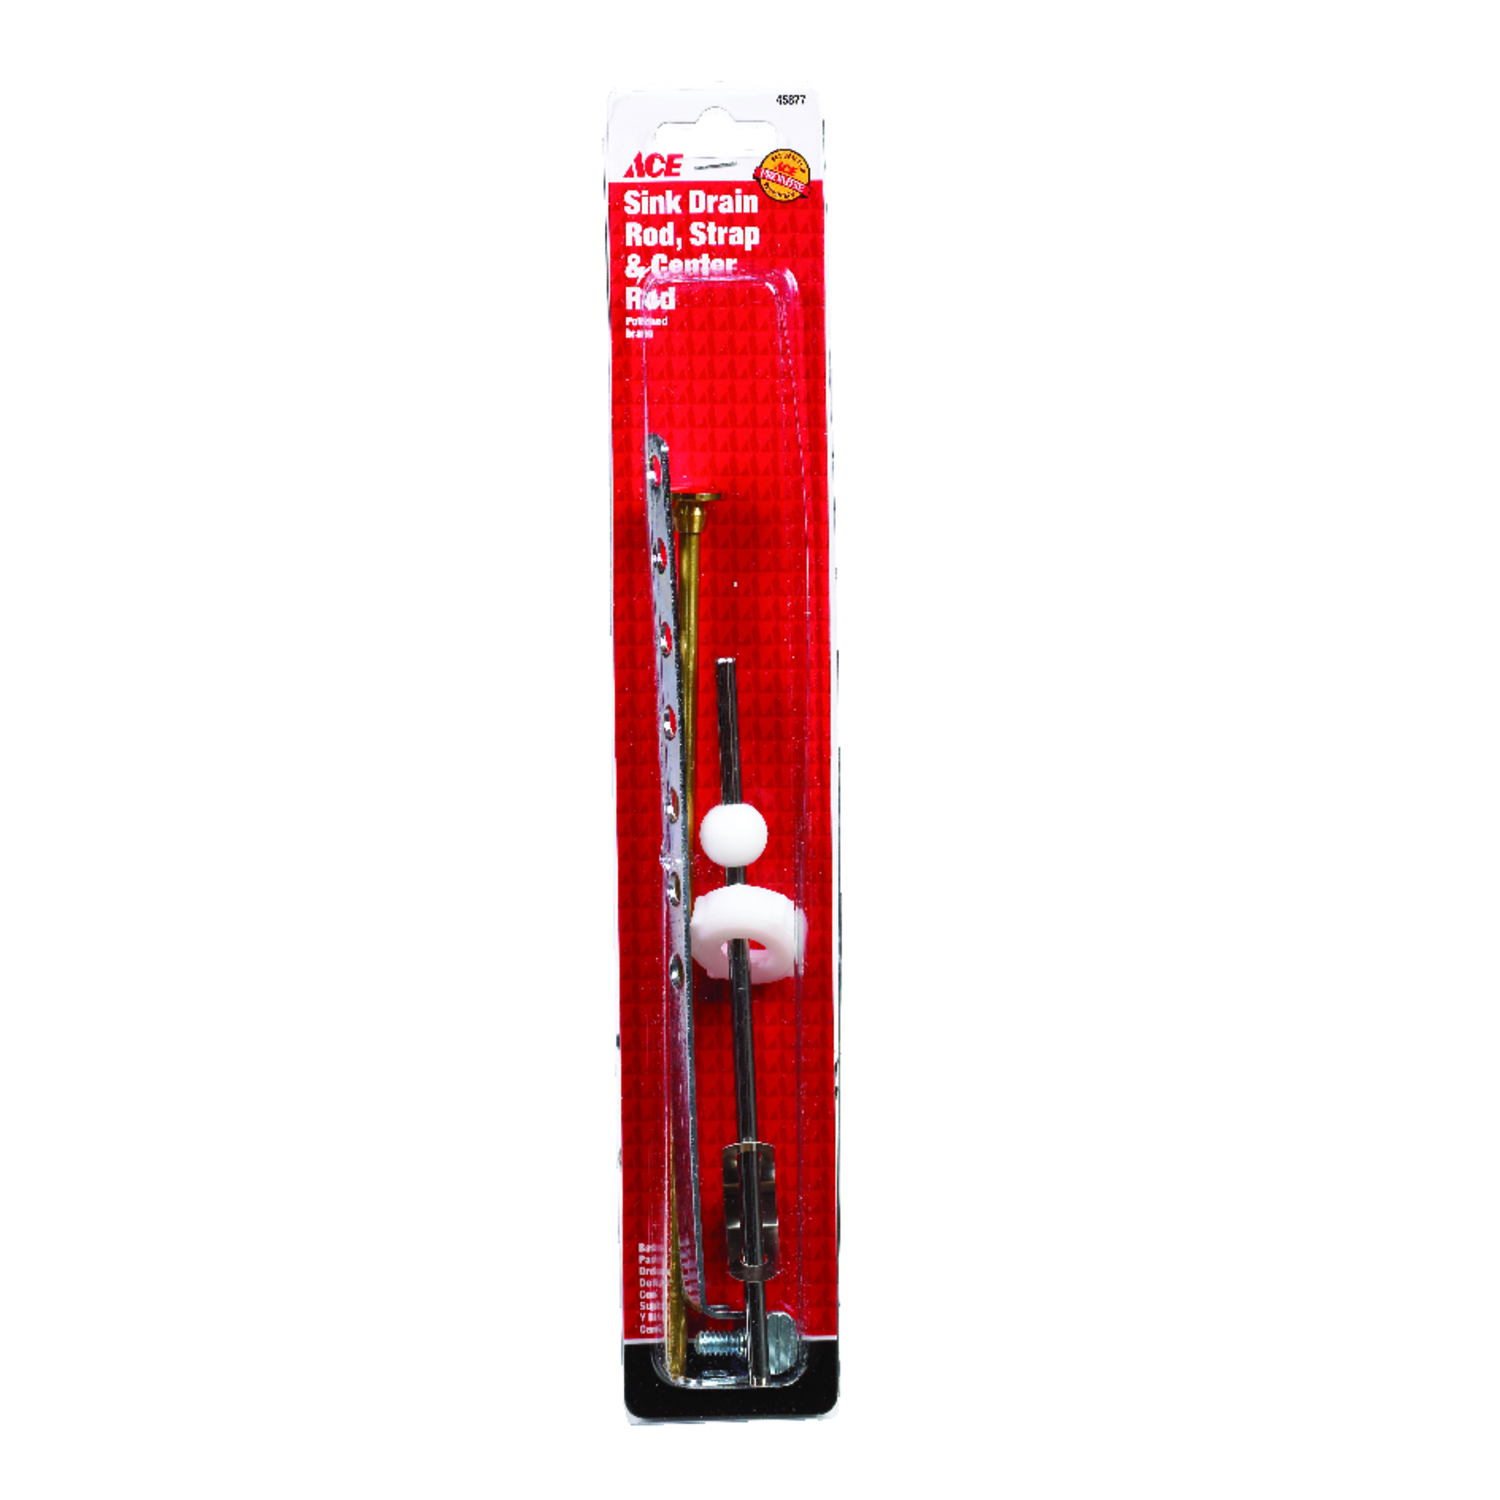 Ace N/A Dia. Sink Drain Rod and Strap Brass Brushed - Ace Hardware